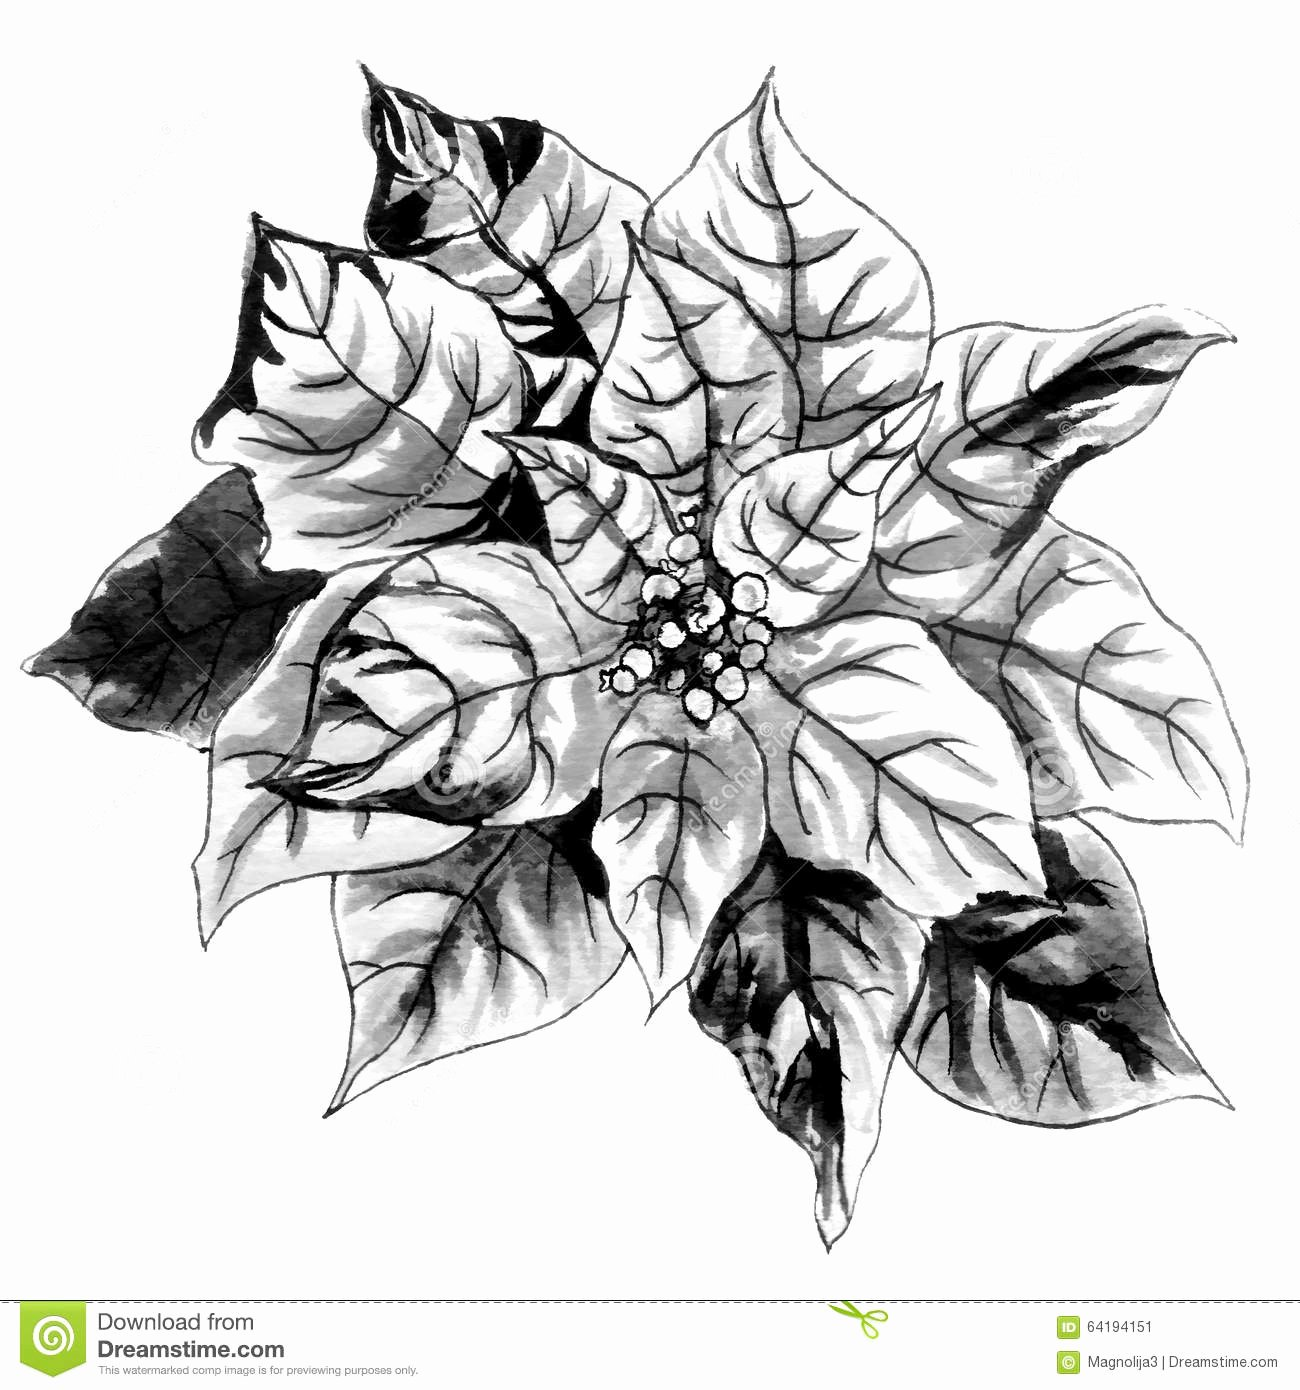 Black and White Illustration Elegant Christmas Star Black and White Monochrome Flower Stock